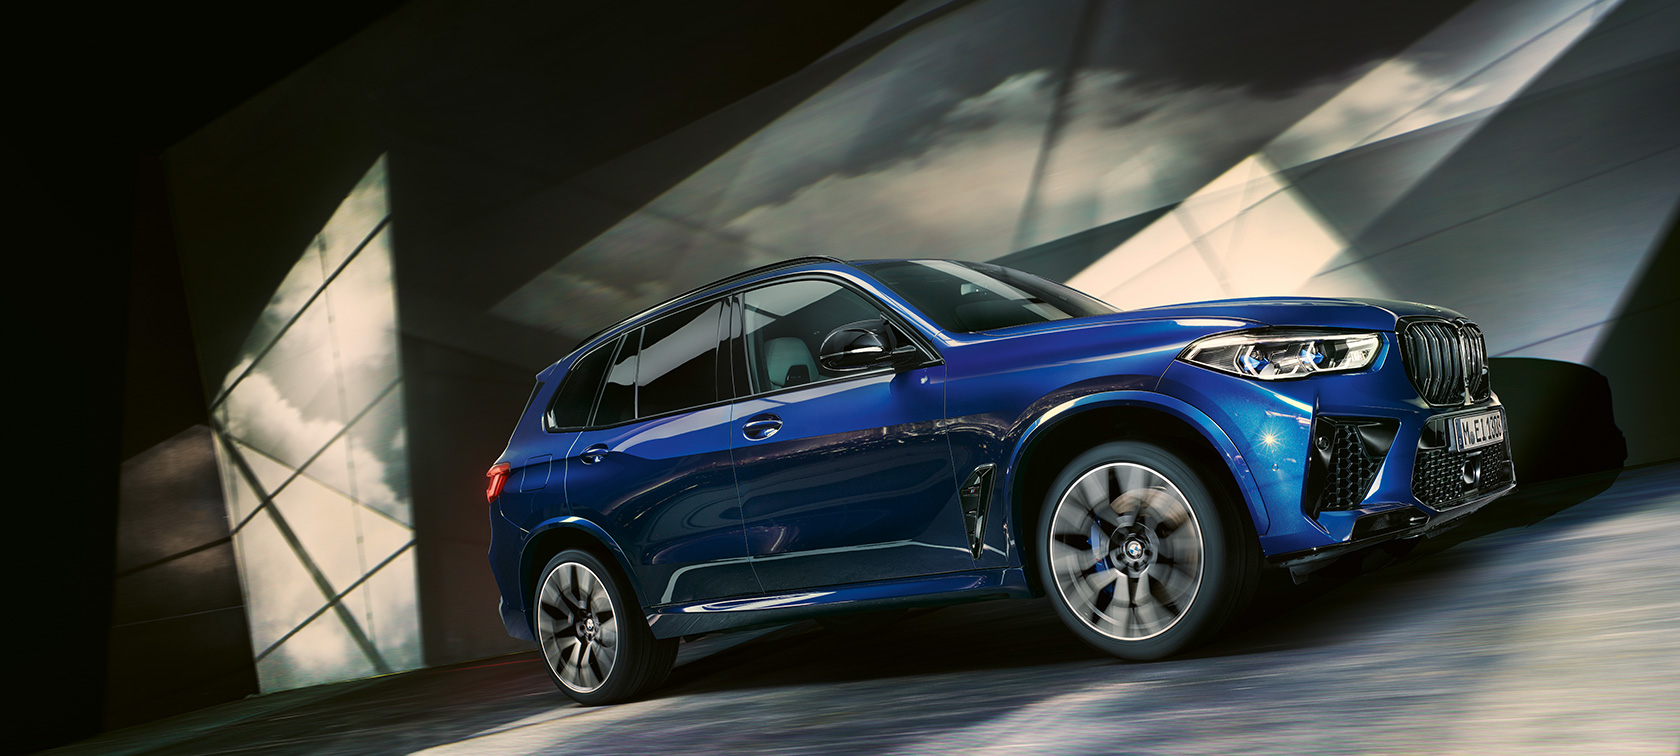 The BMW X5 M Automobiles F95 2020